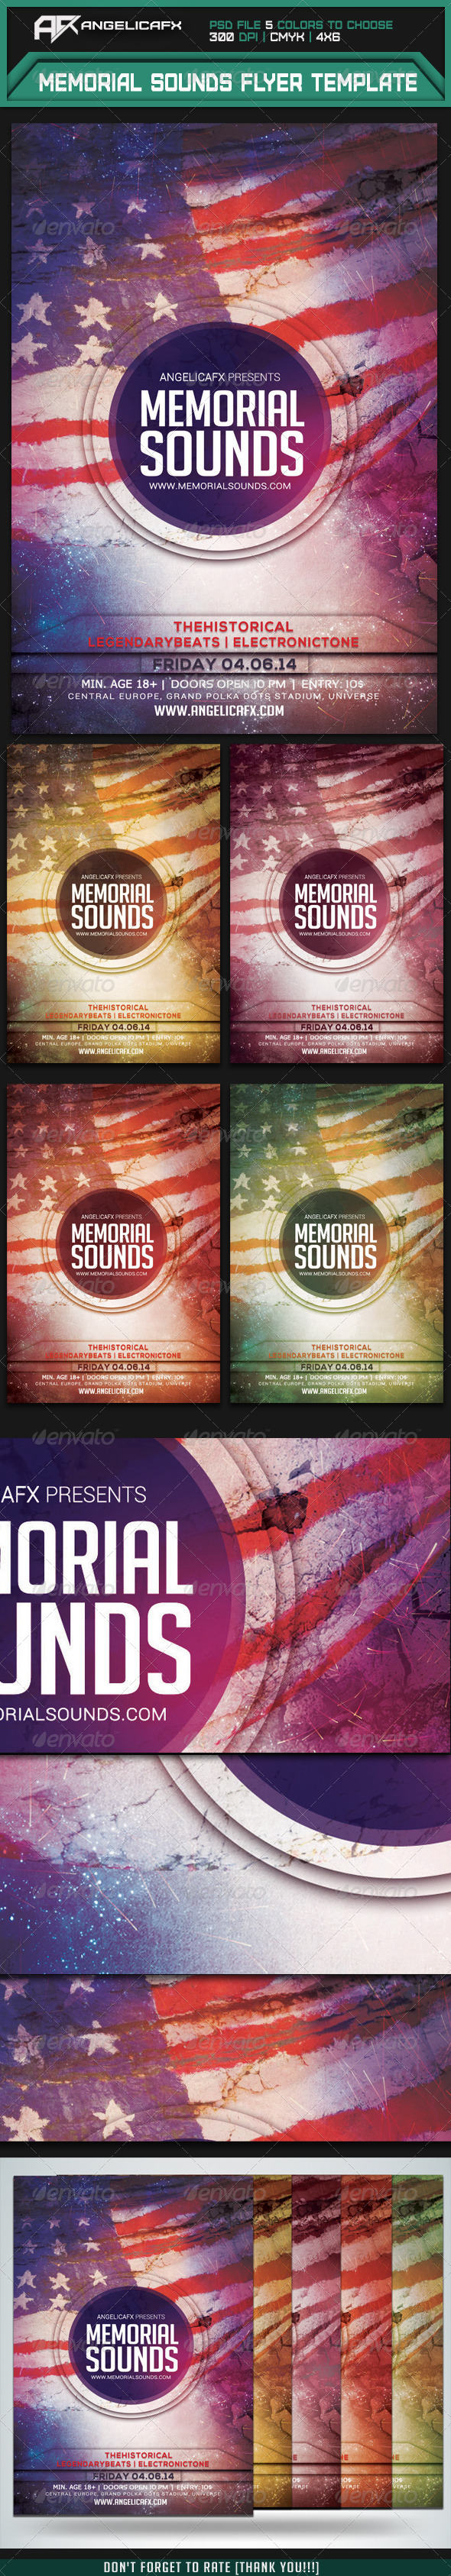 GraphicRiver Memorial Sounds Flyer Template 7844651